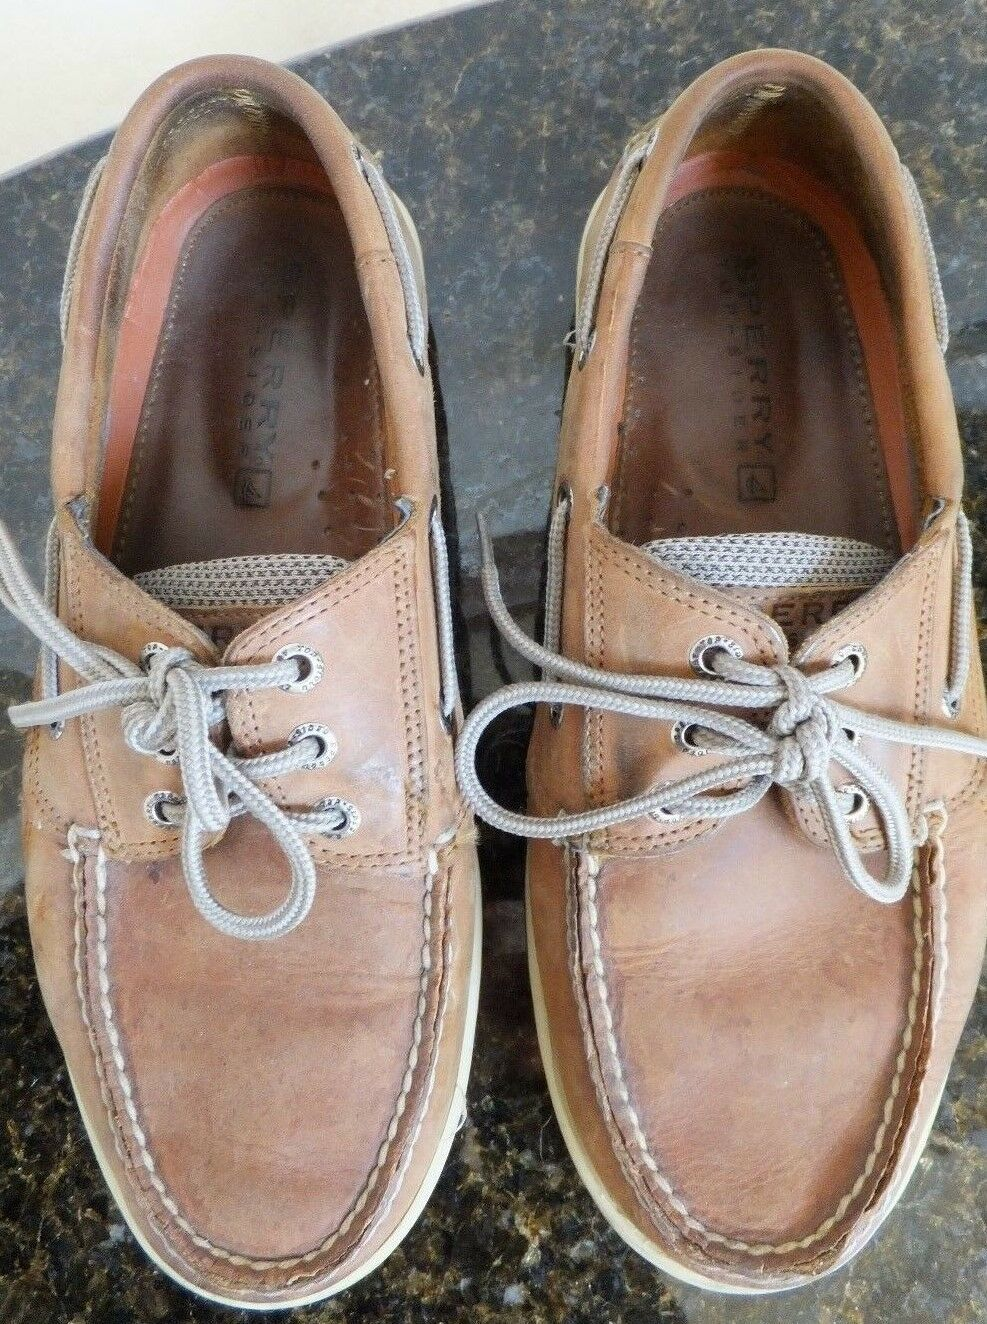 Sperry Tan Topsider Contour System Men's Shoes Size 8.5M Tan Sperry / Brown, leather upper 4f5b6a